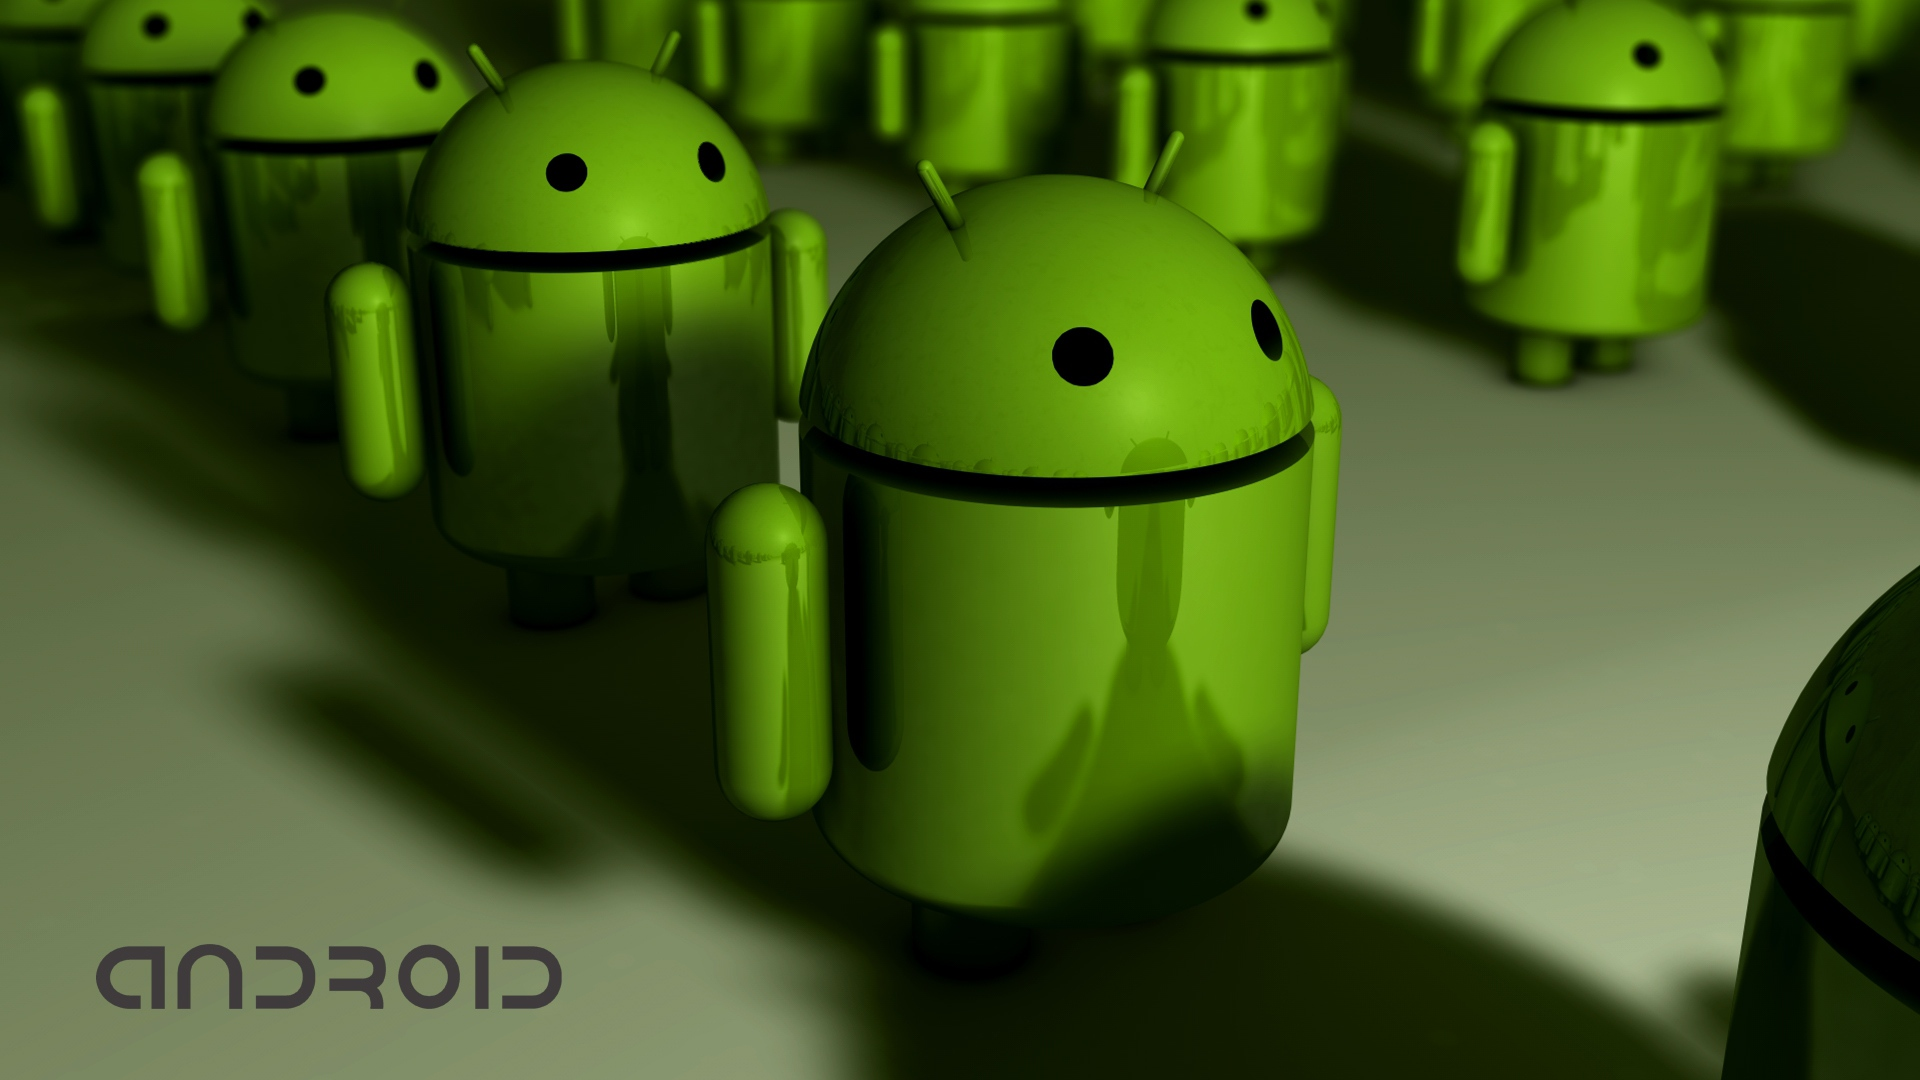 Android Row Hd Wallpaper